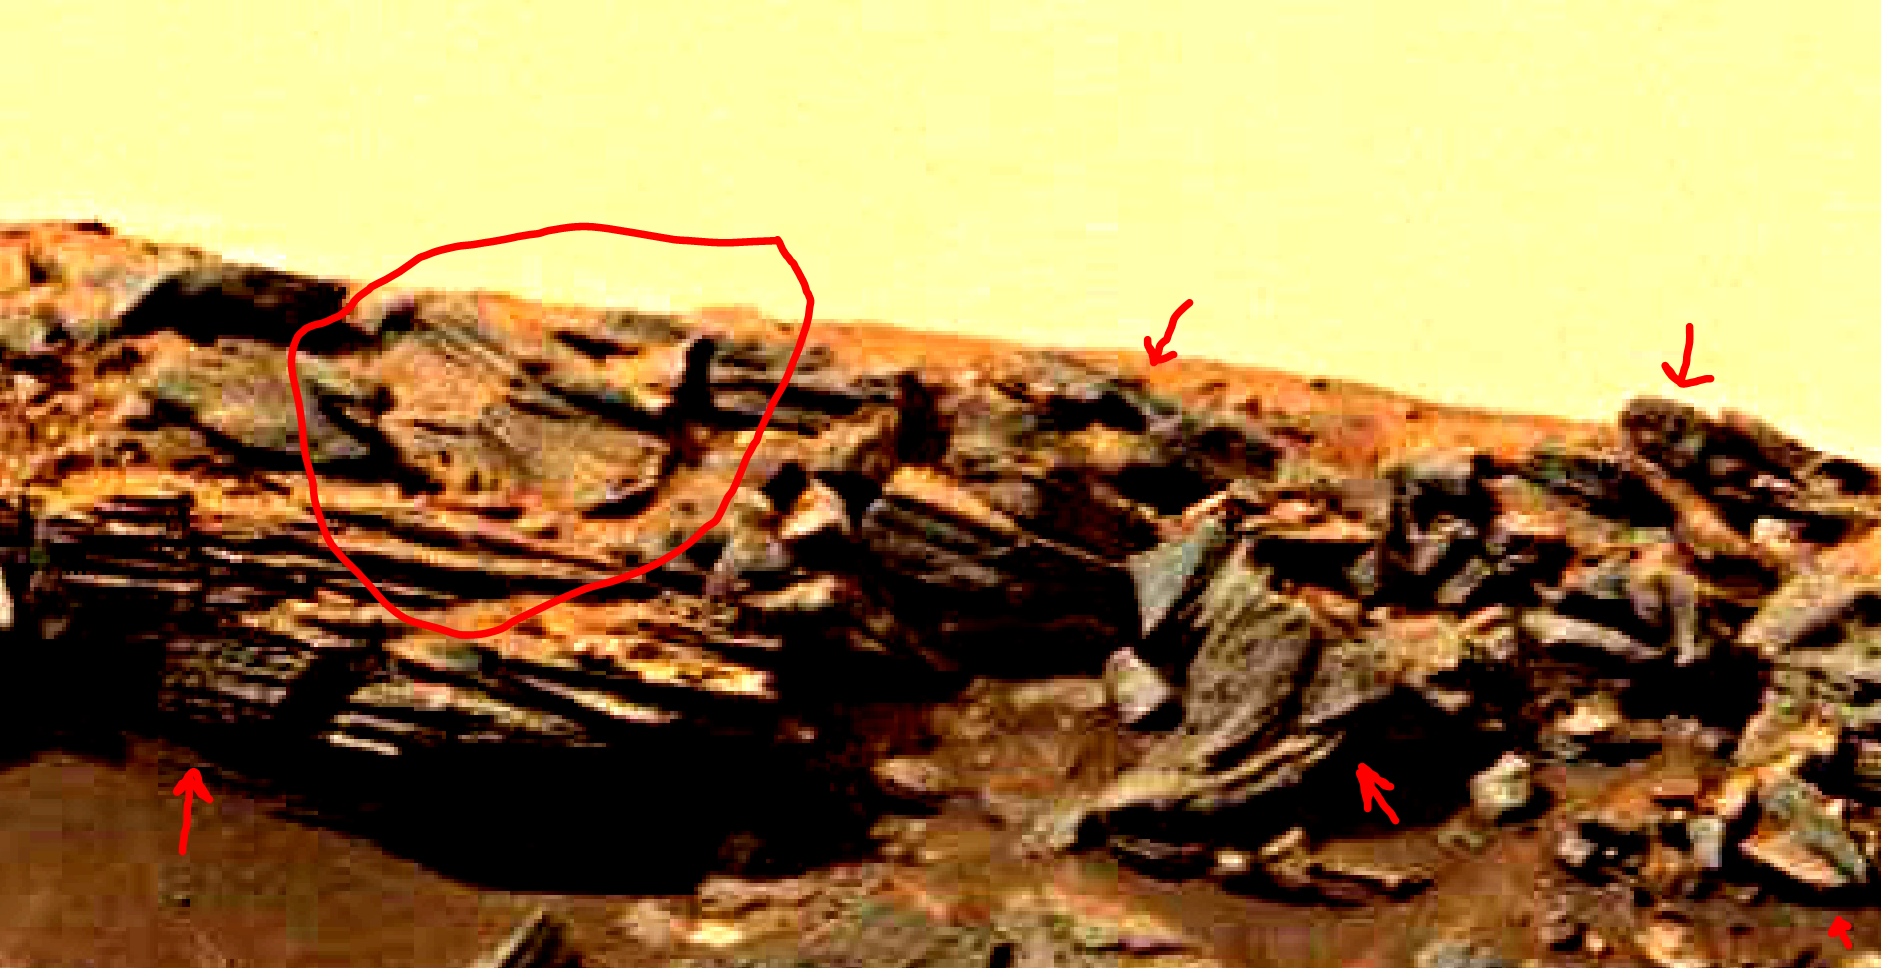 mars-sol-1463-anomaly-artifacts-20a-was-life-on-mars